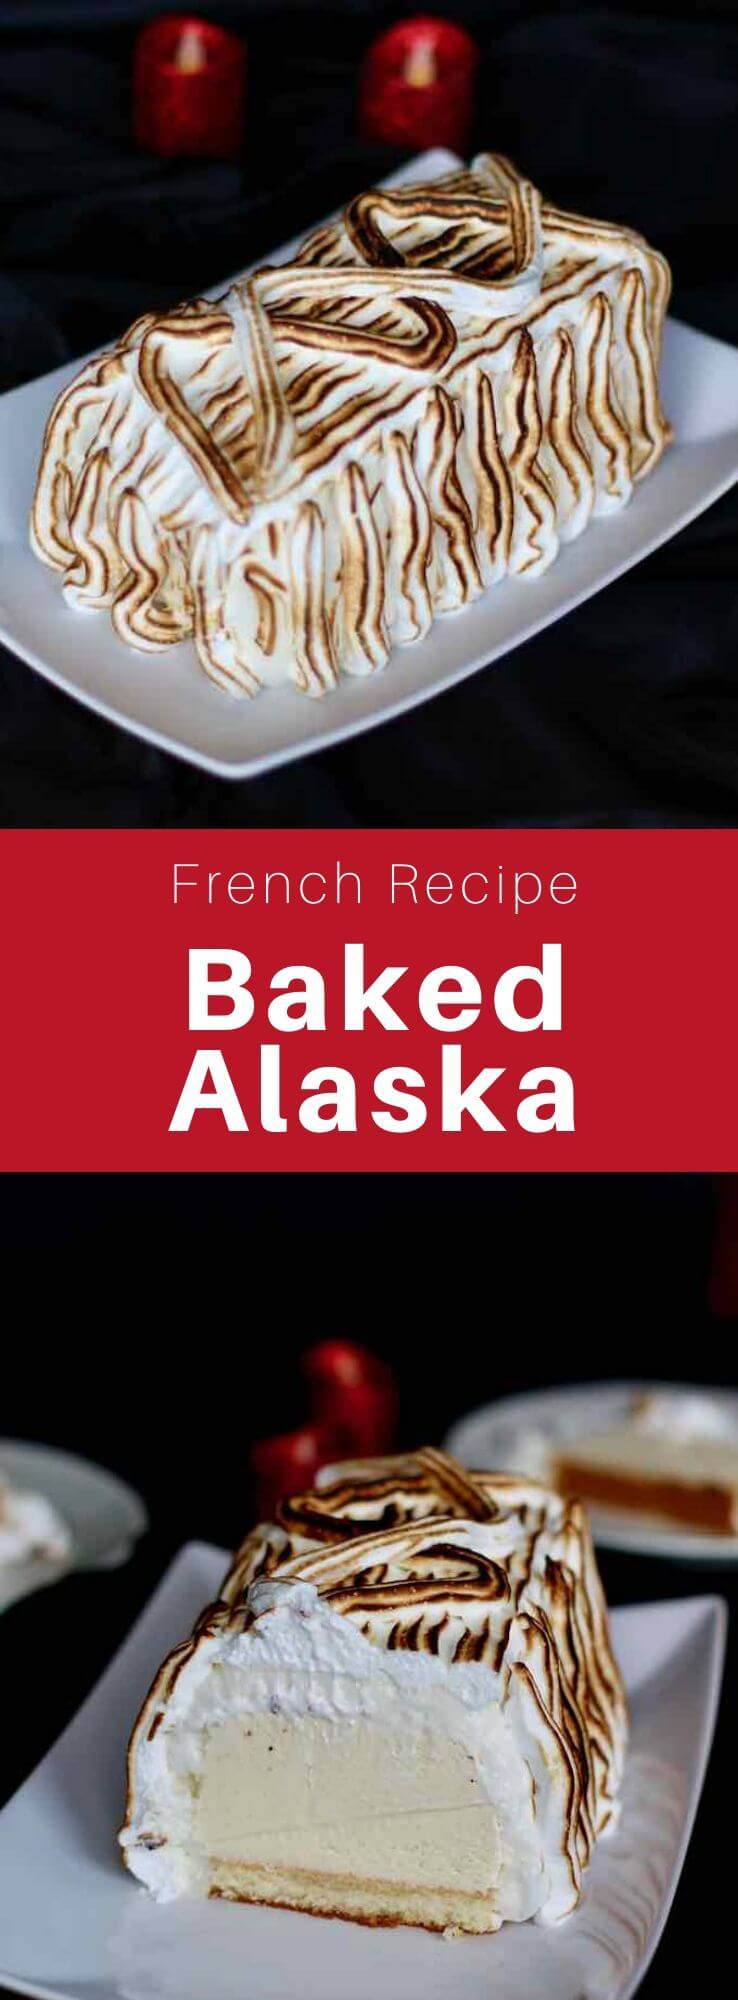 Omelette norvégienne (Baked Alaska) is a dessert prepared with vanilla ice cream covered with meringue placed on a sponge cake, then baked and flambéed with Grand Marnier. #French #France #FrenchDessert #FrenchRecipe #WorldCuisine #196flavors